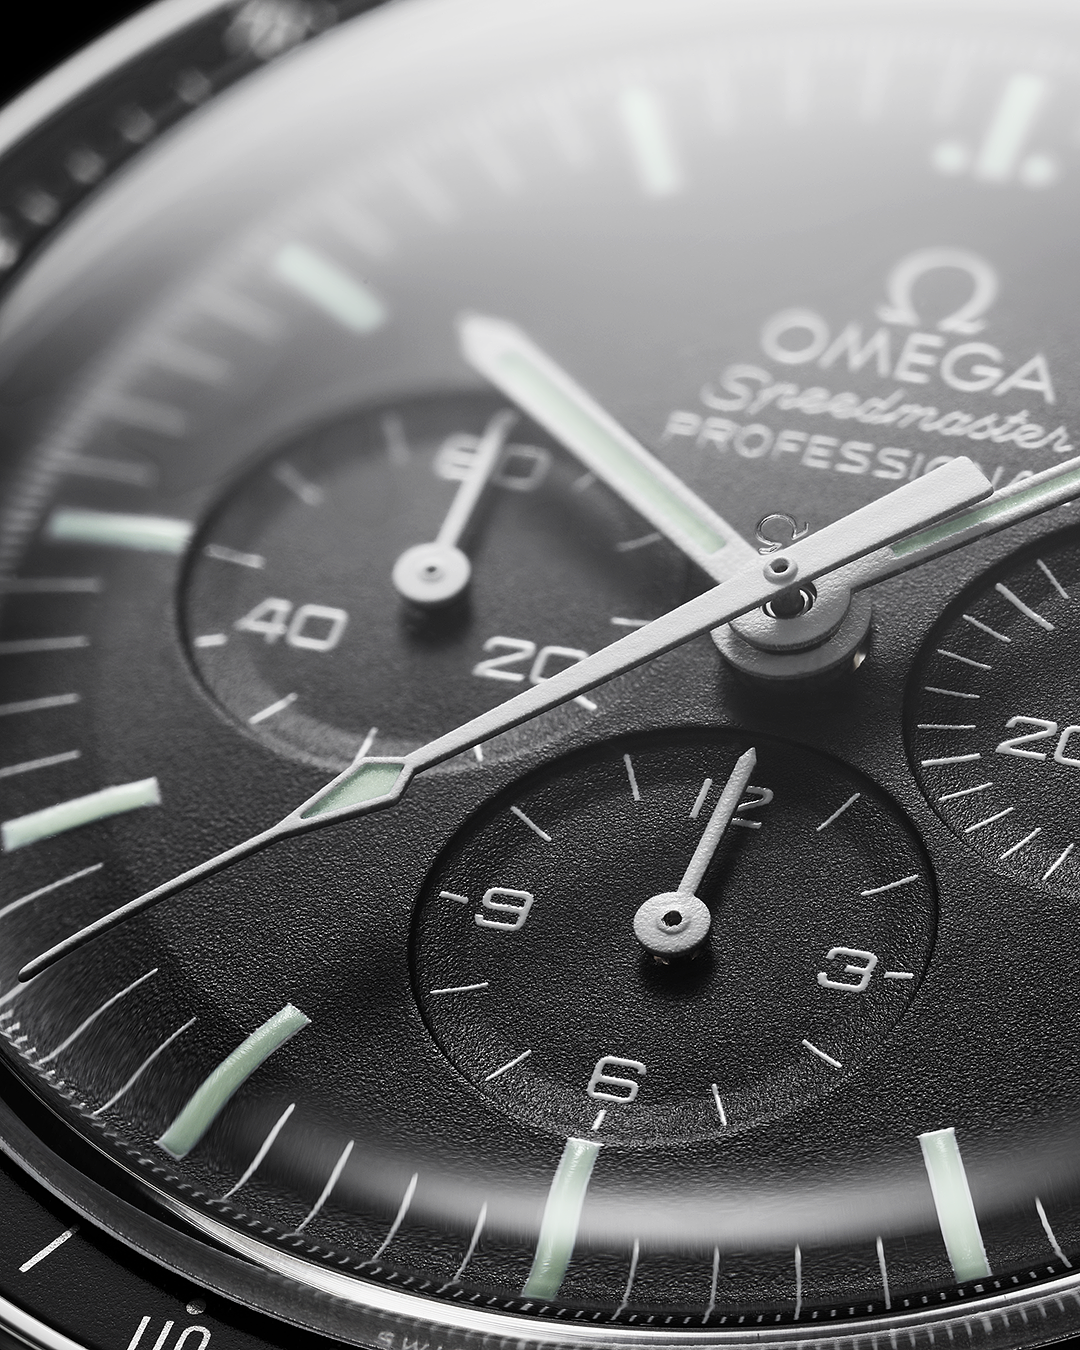 Omega Speedmaster Professional Moonwatch Macro